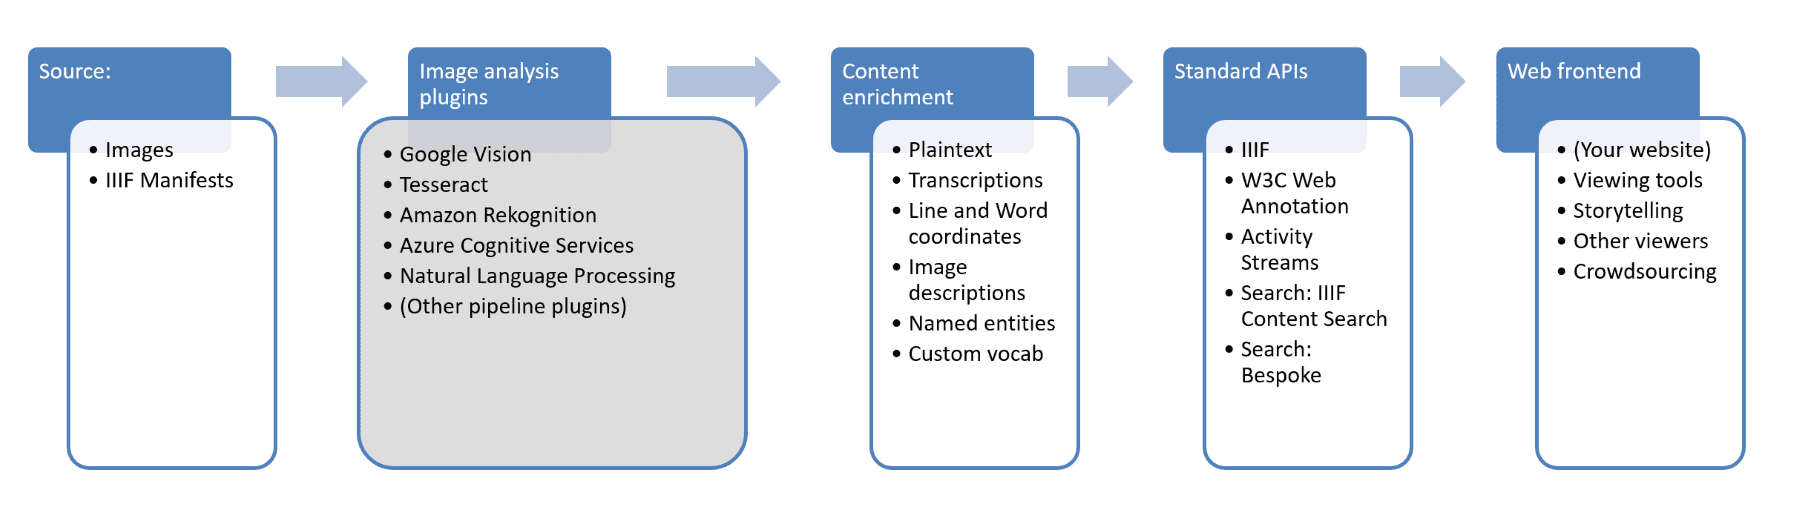 Diagram showing steps in enrichment pipeline